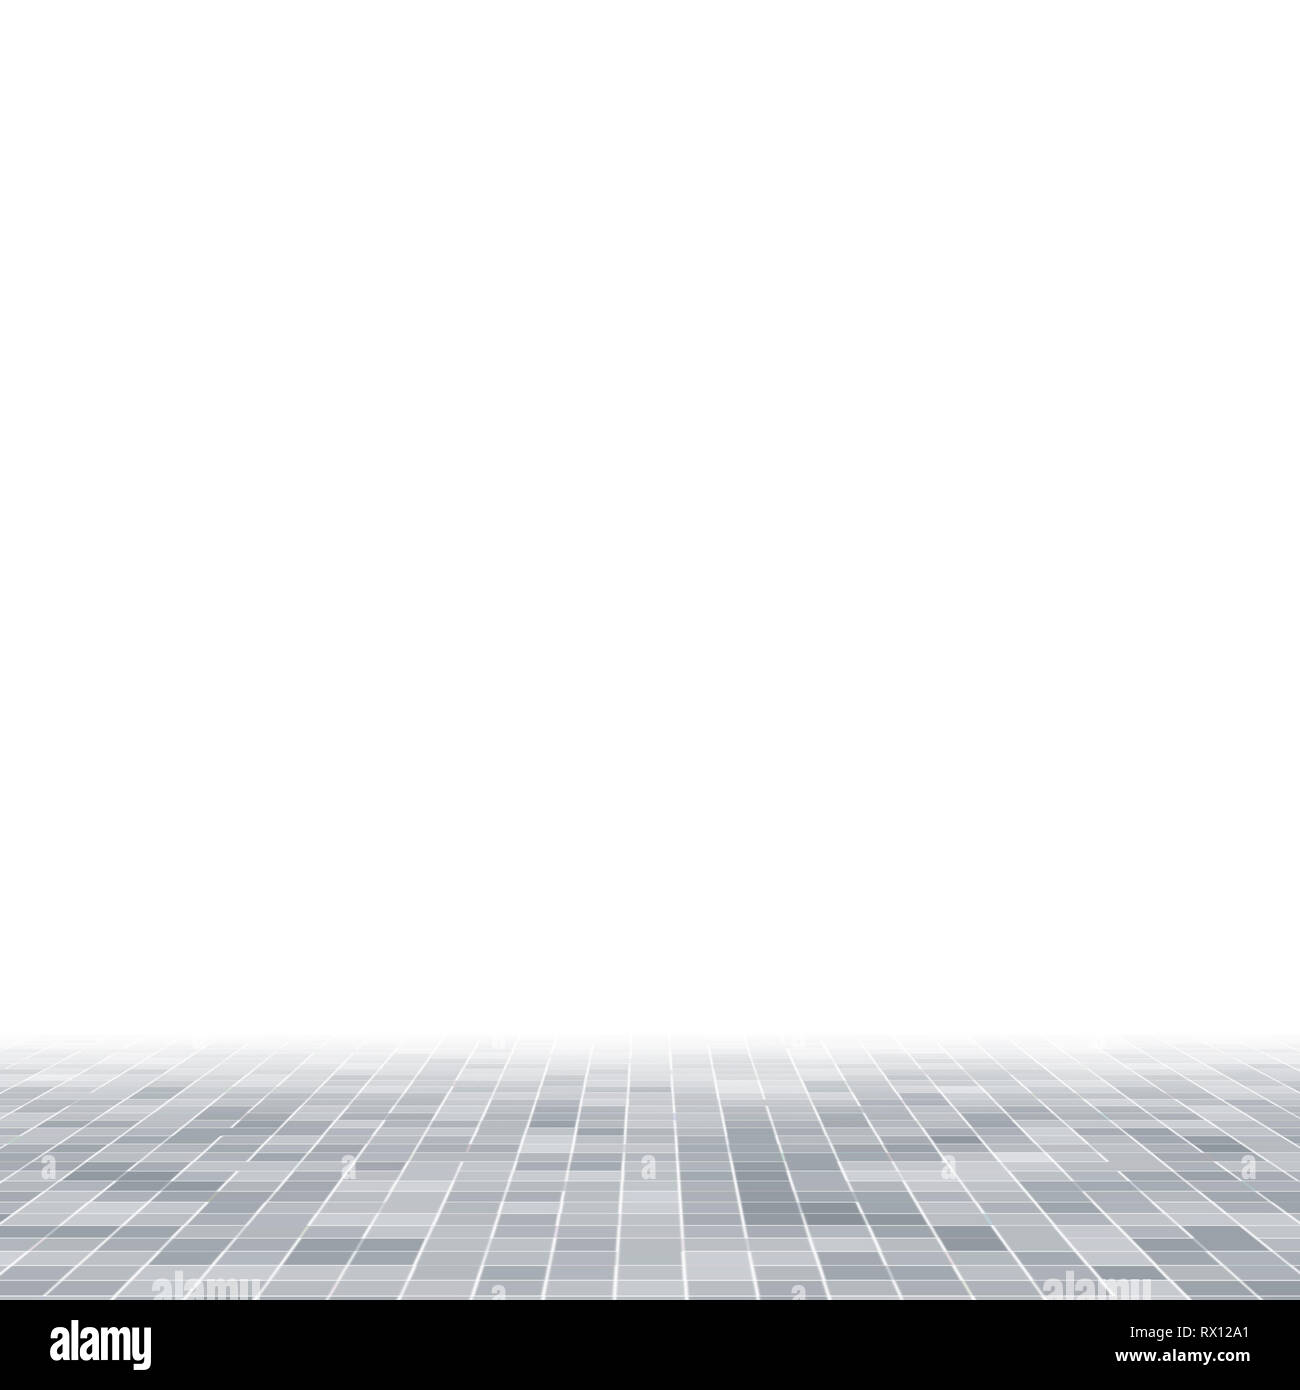 White And Grey The Tile Wall High Resolution Wallpaper Or Brick